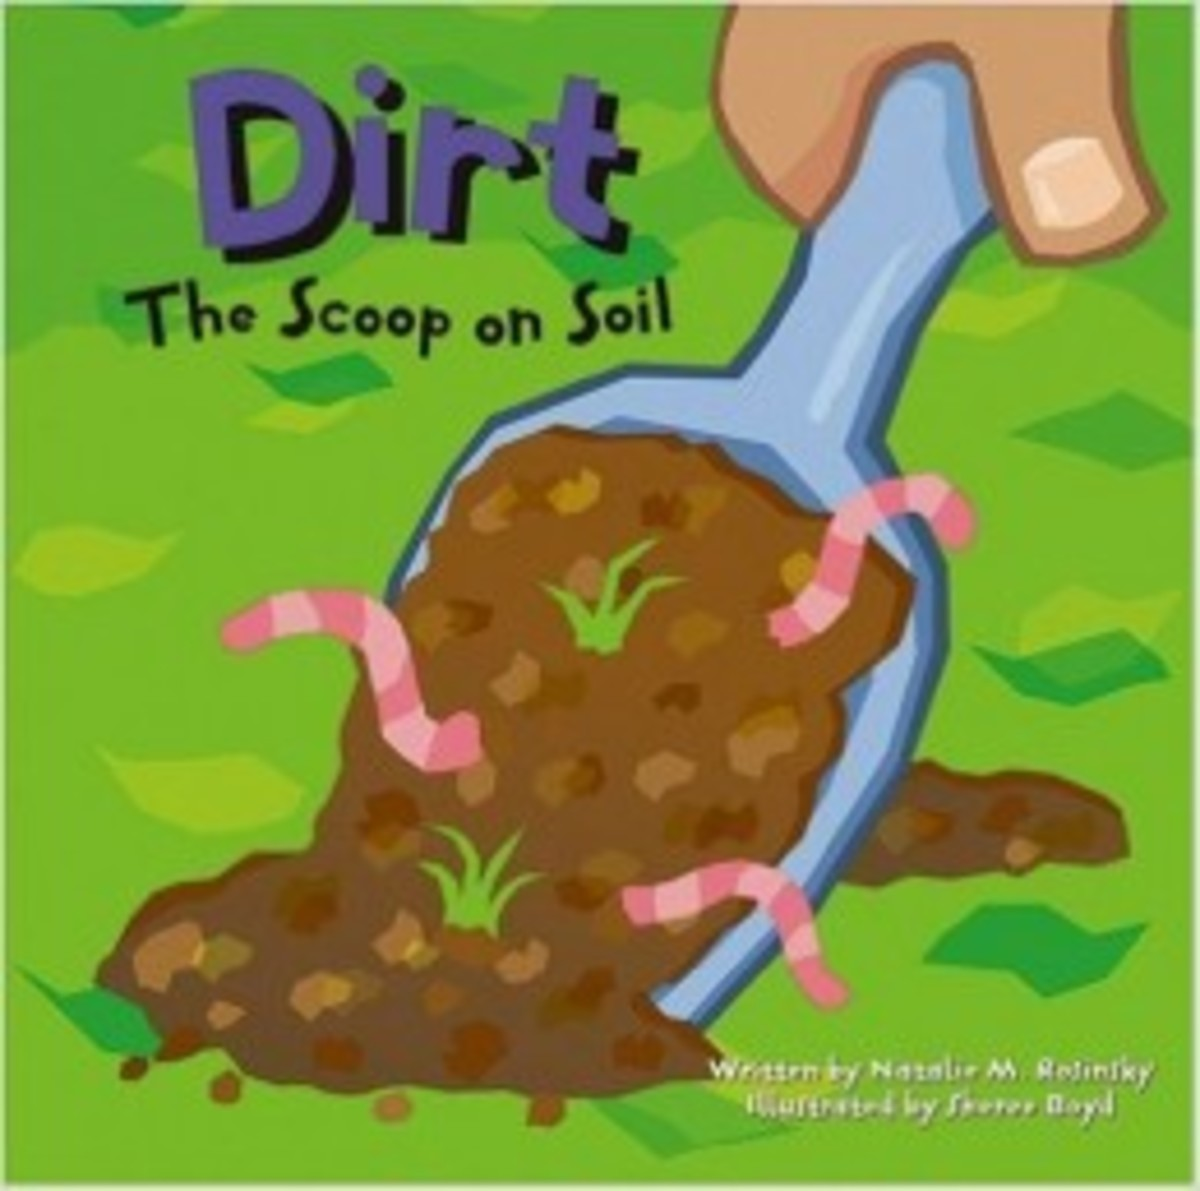 Dirt: The Scoop on Soil (Amazing Science) by Natalie M. Rosinsky